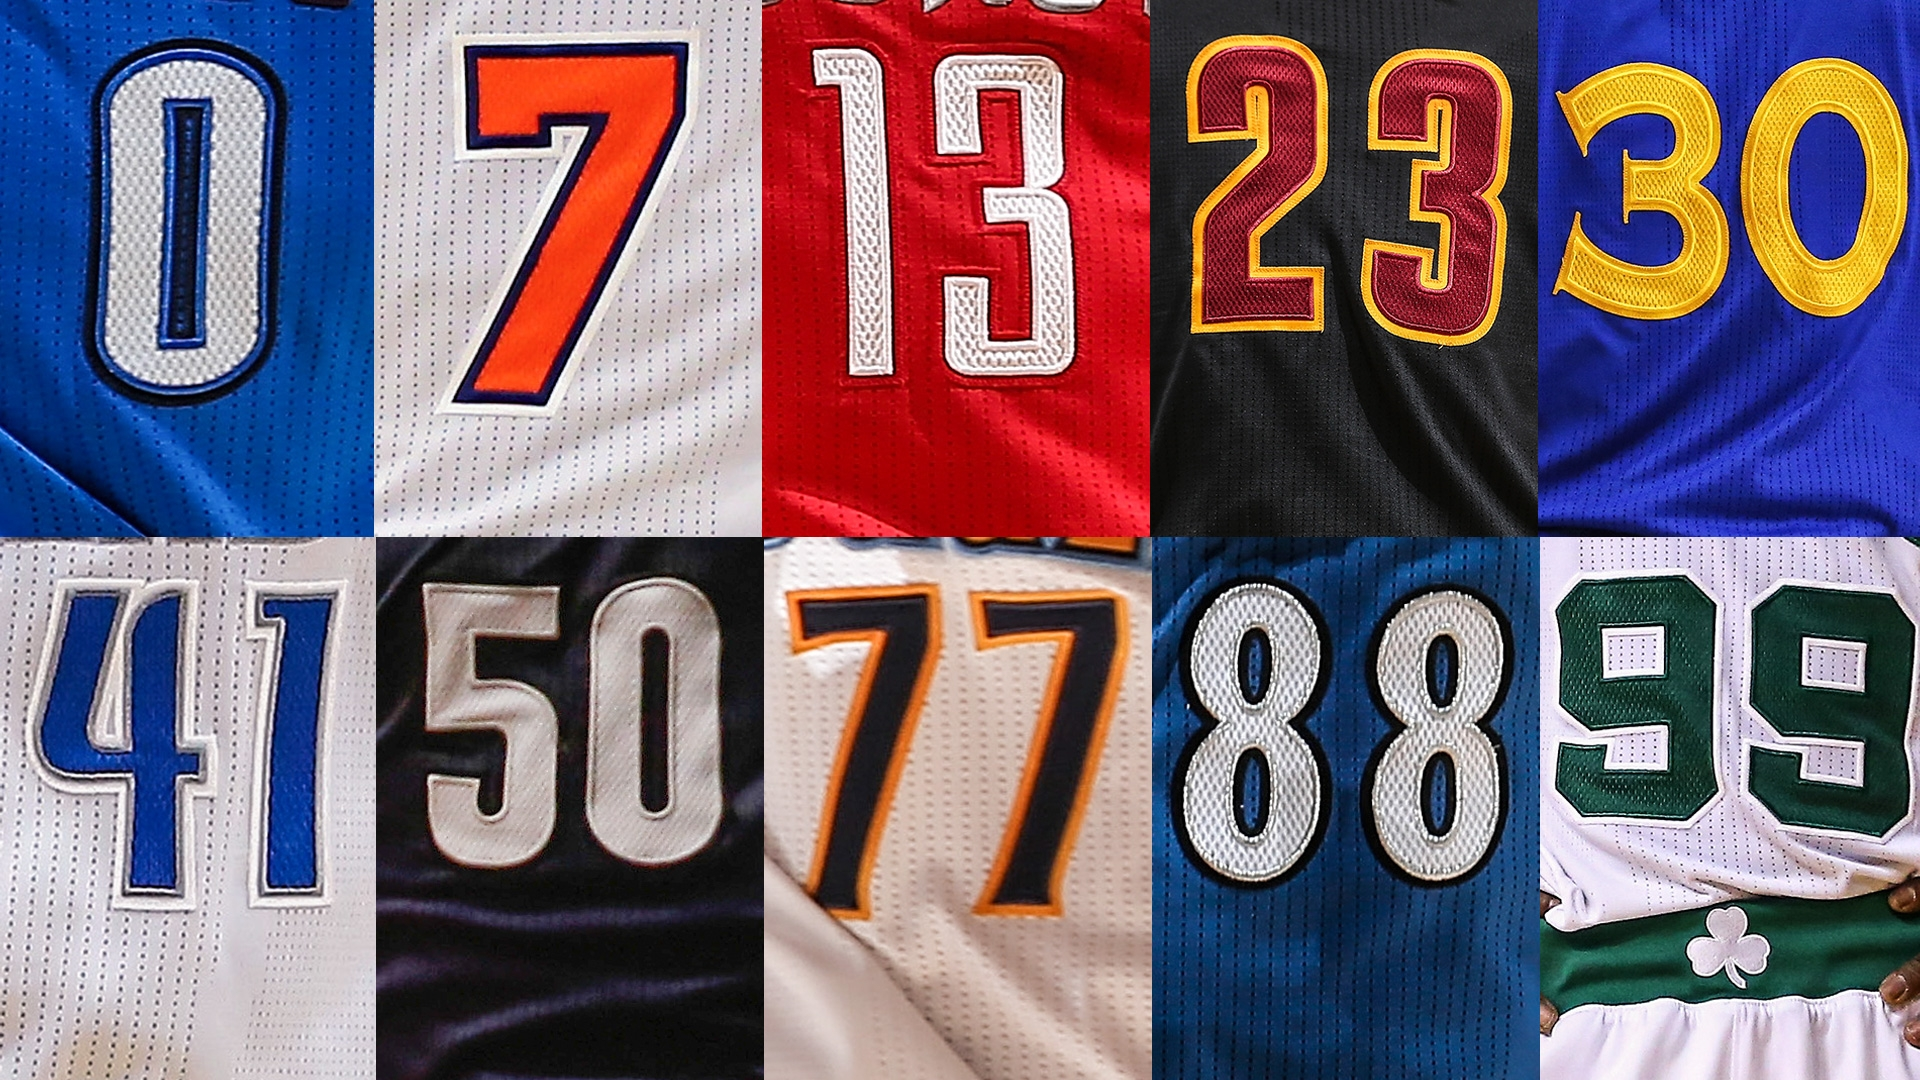 lucky basketball jersey numbers